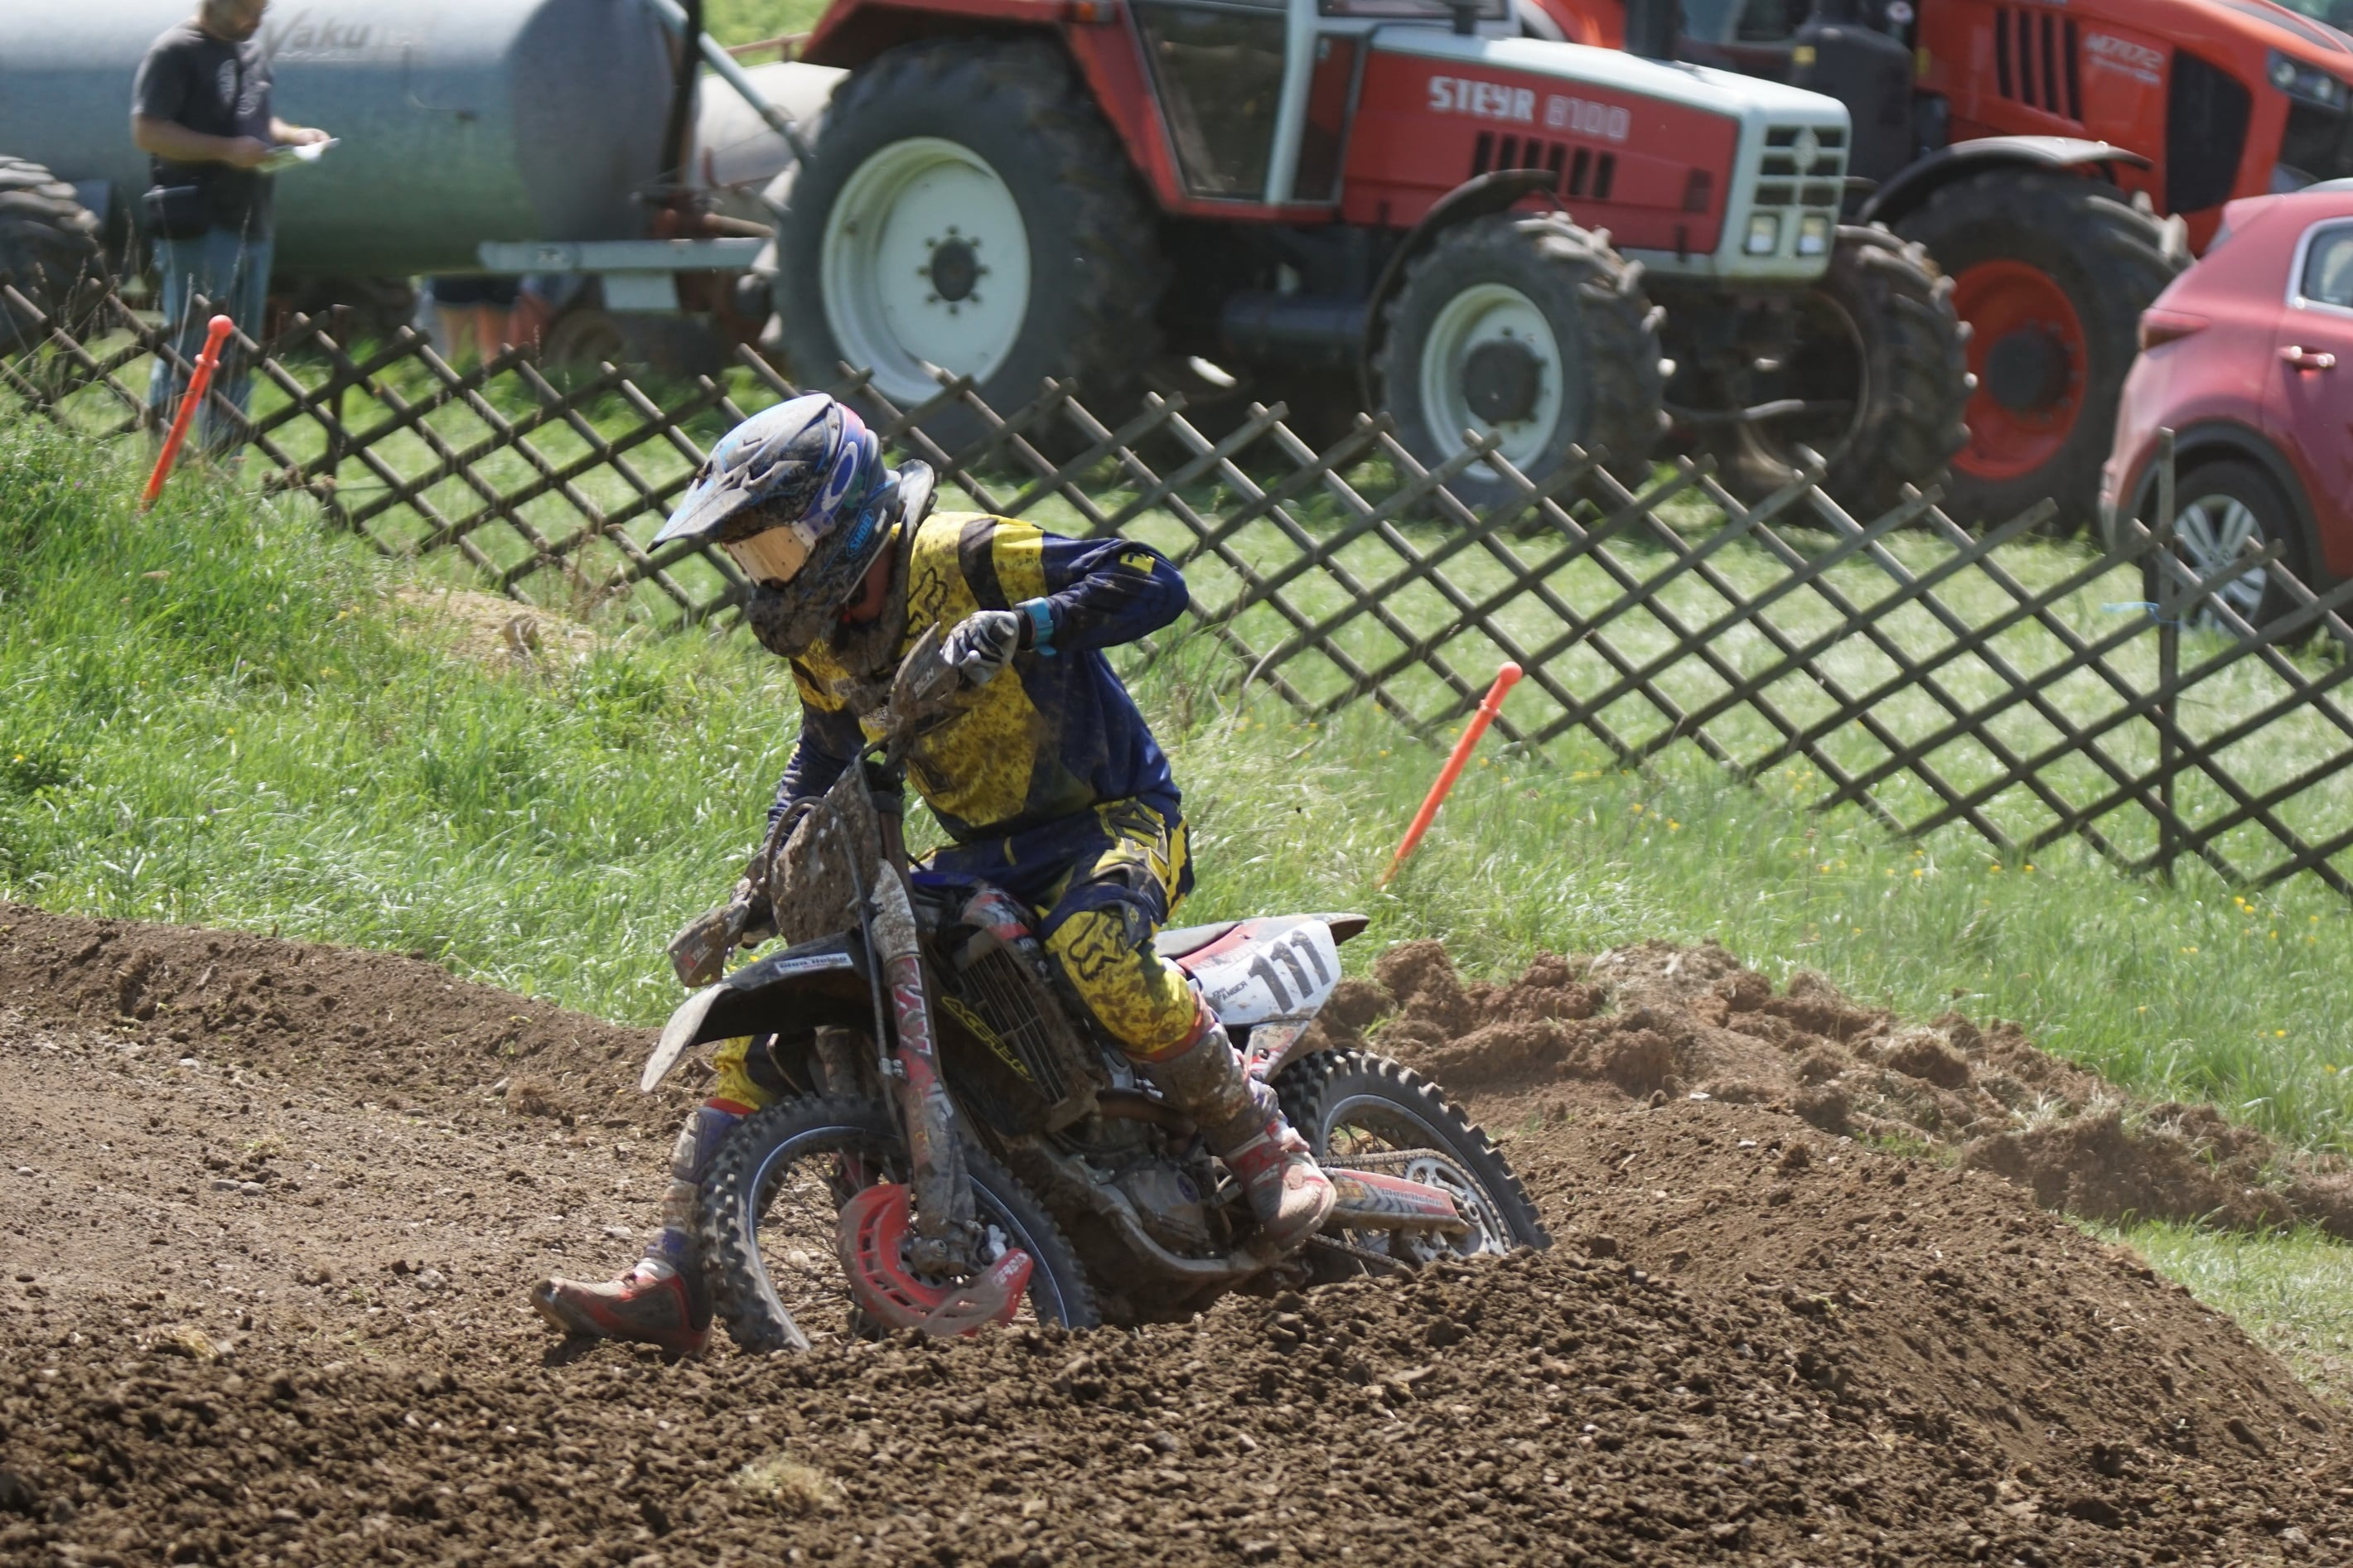 DSC 452_Moto Cross Sittendorf Teil1 am 29.04.2018